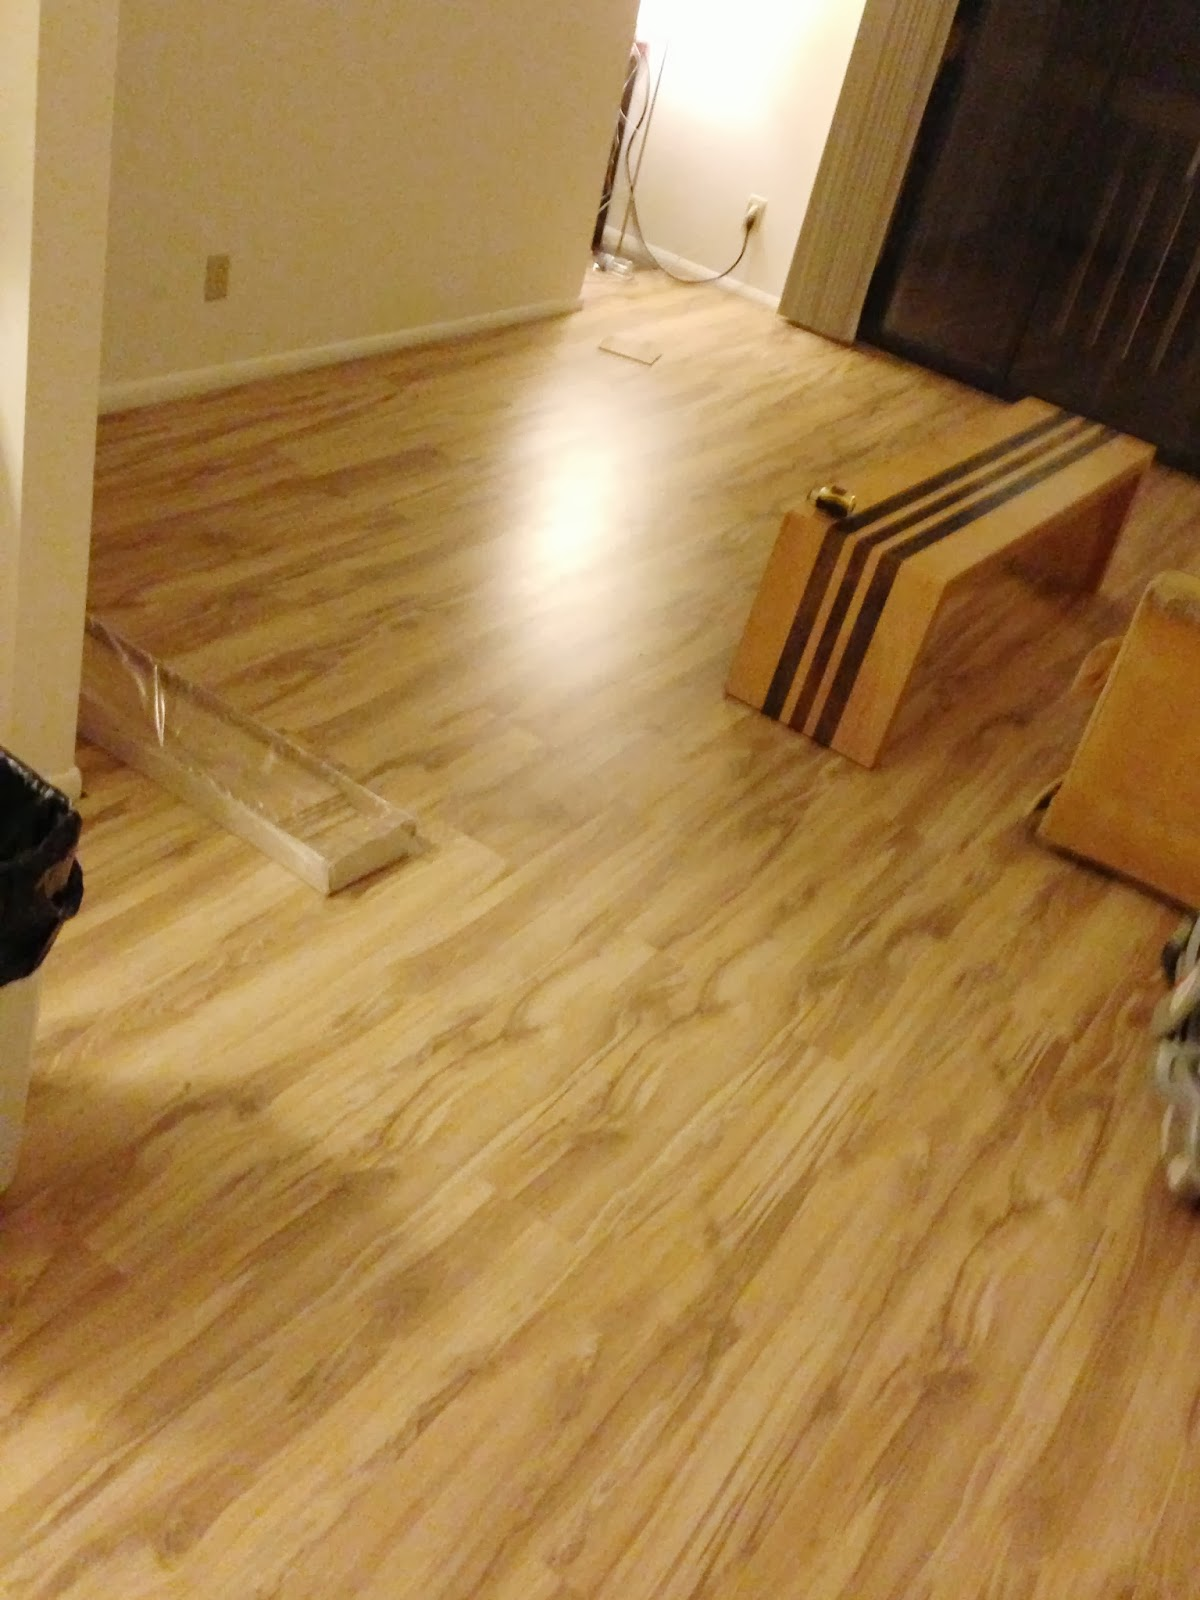 How We Put Hardwood Over Carpet - Messymom